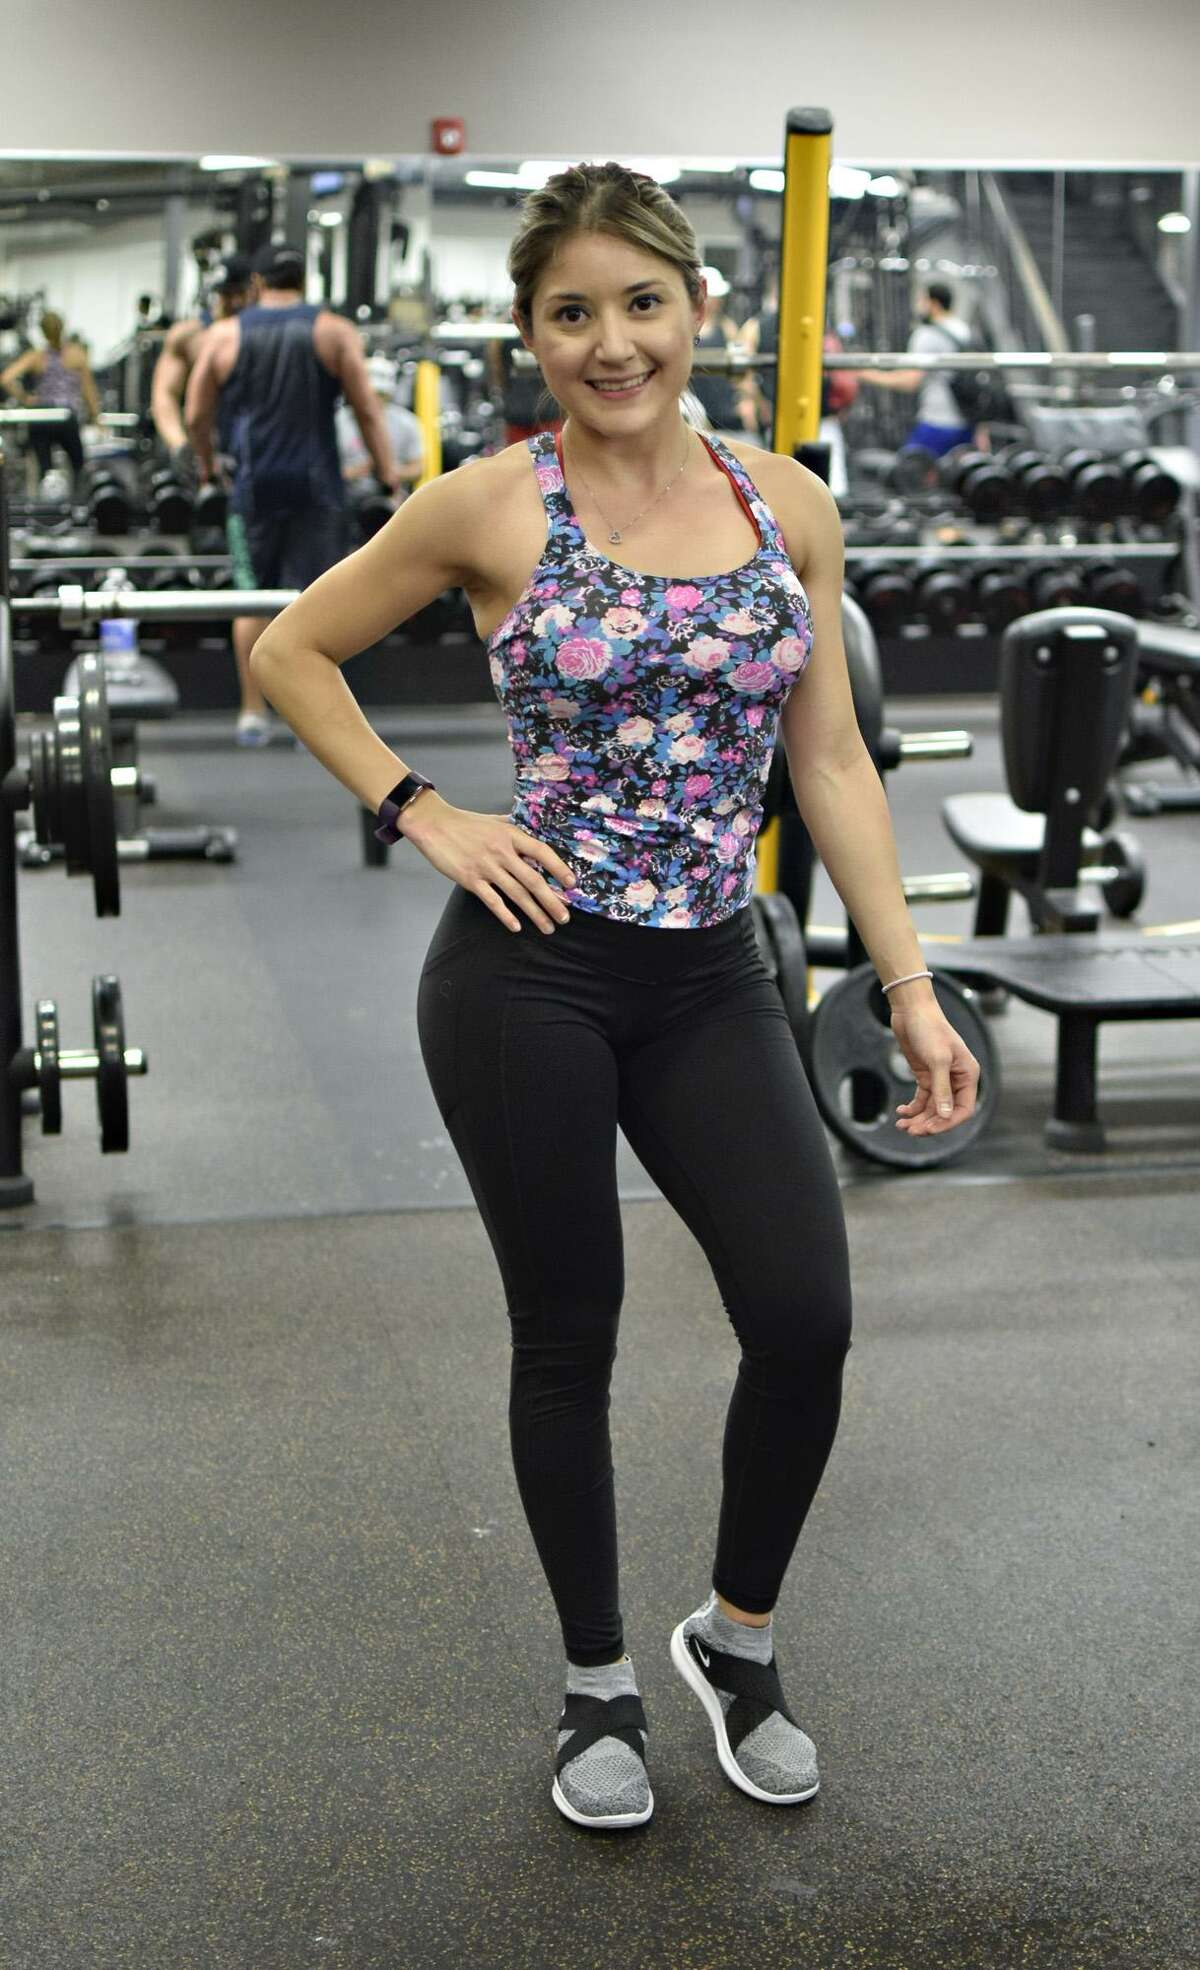 Vanessa Gamez is preparing for her third competition heading to the NPC Battle on the Bay July 8.